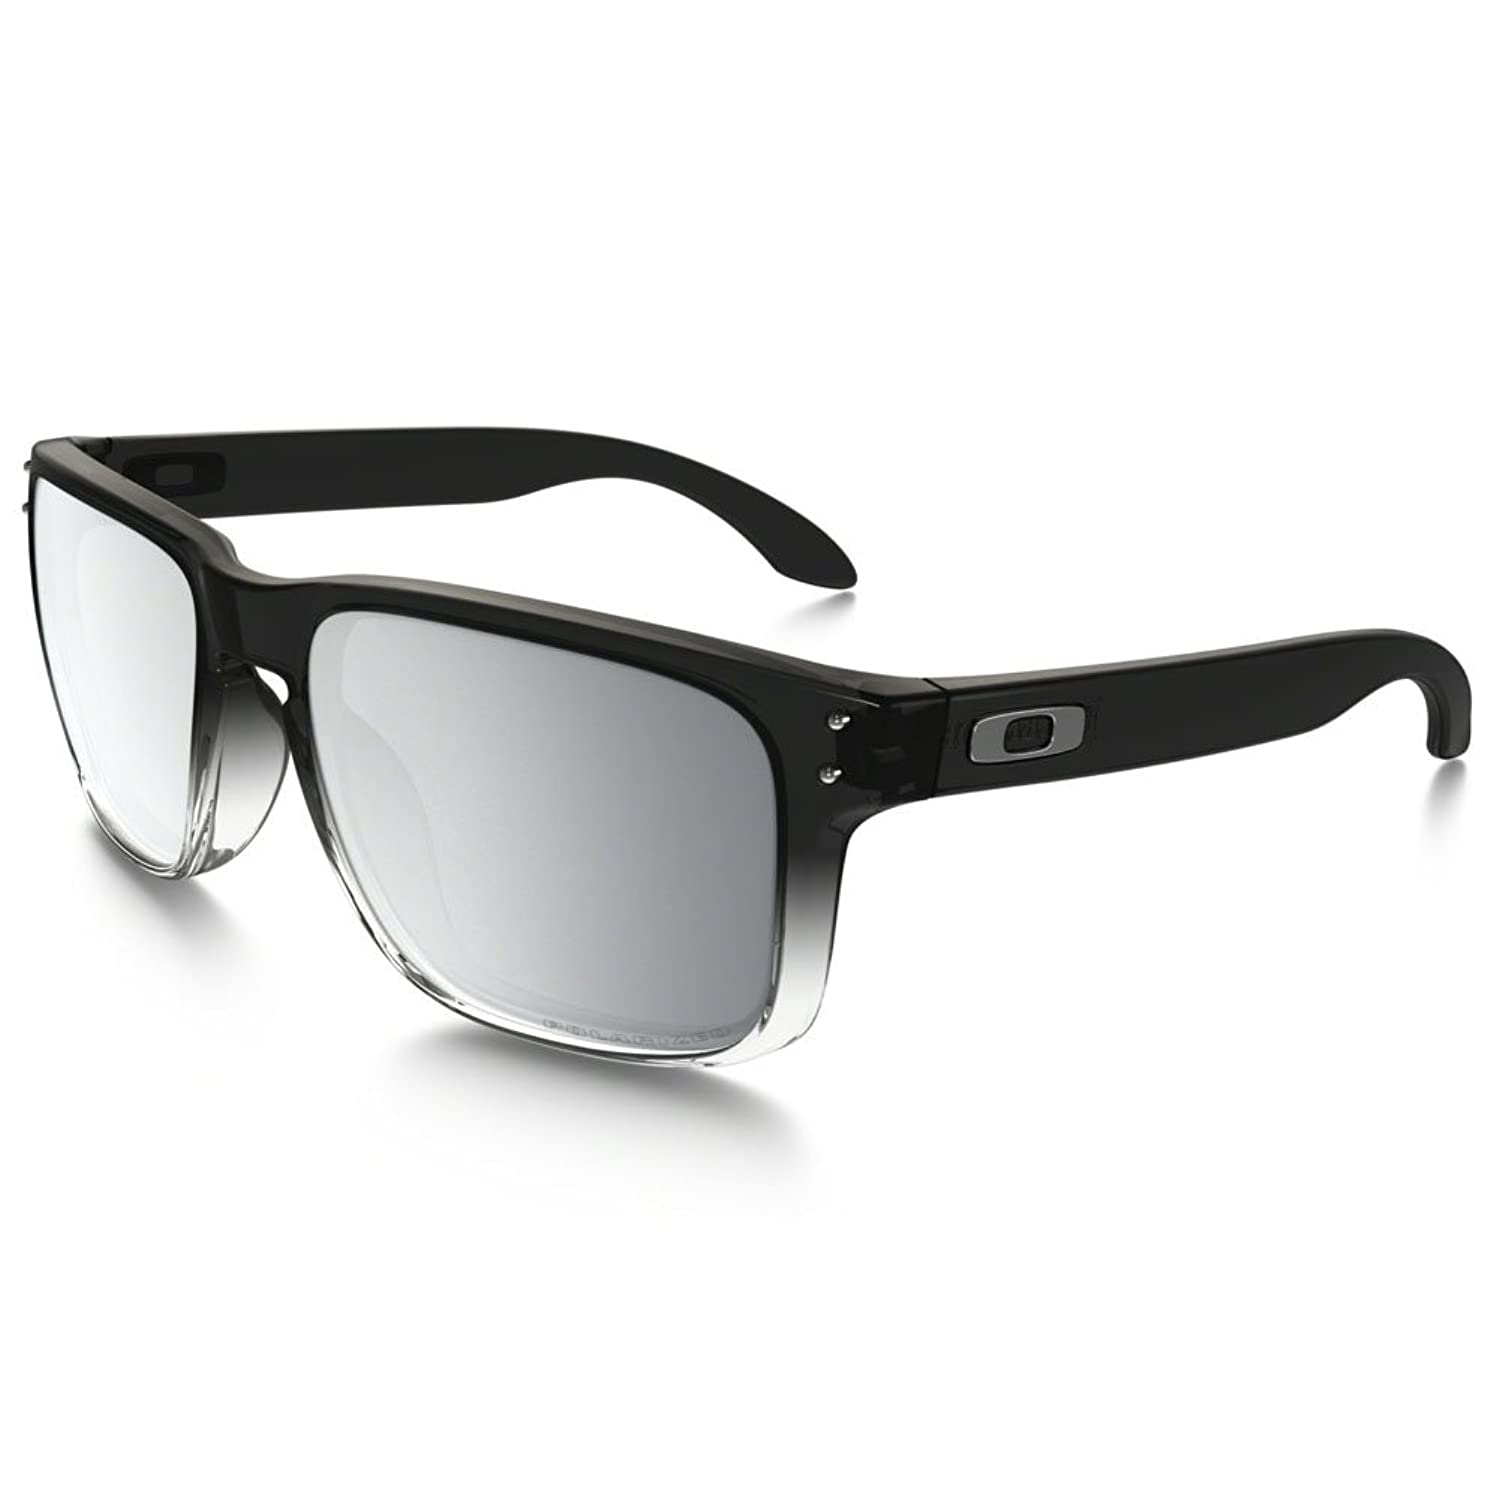 oakley symbol for sunglasses  oakley holbrook sunglasses